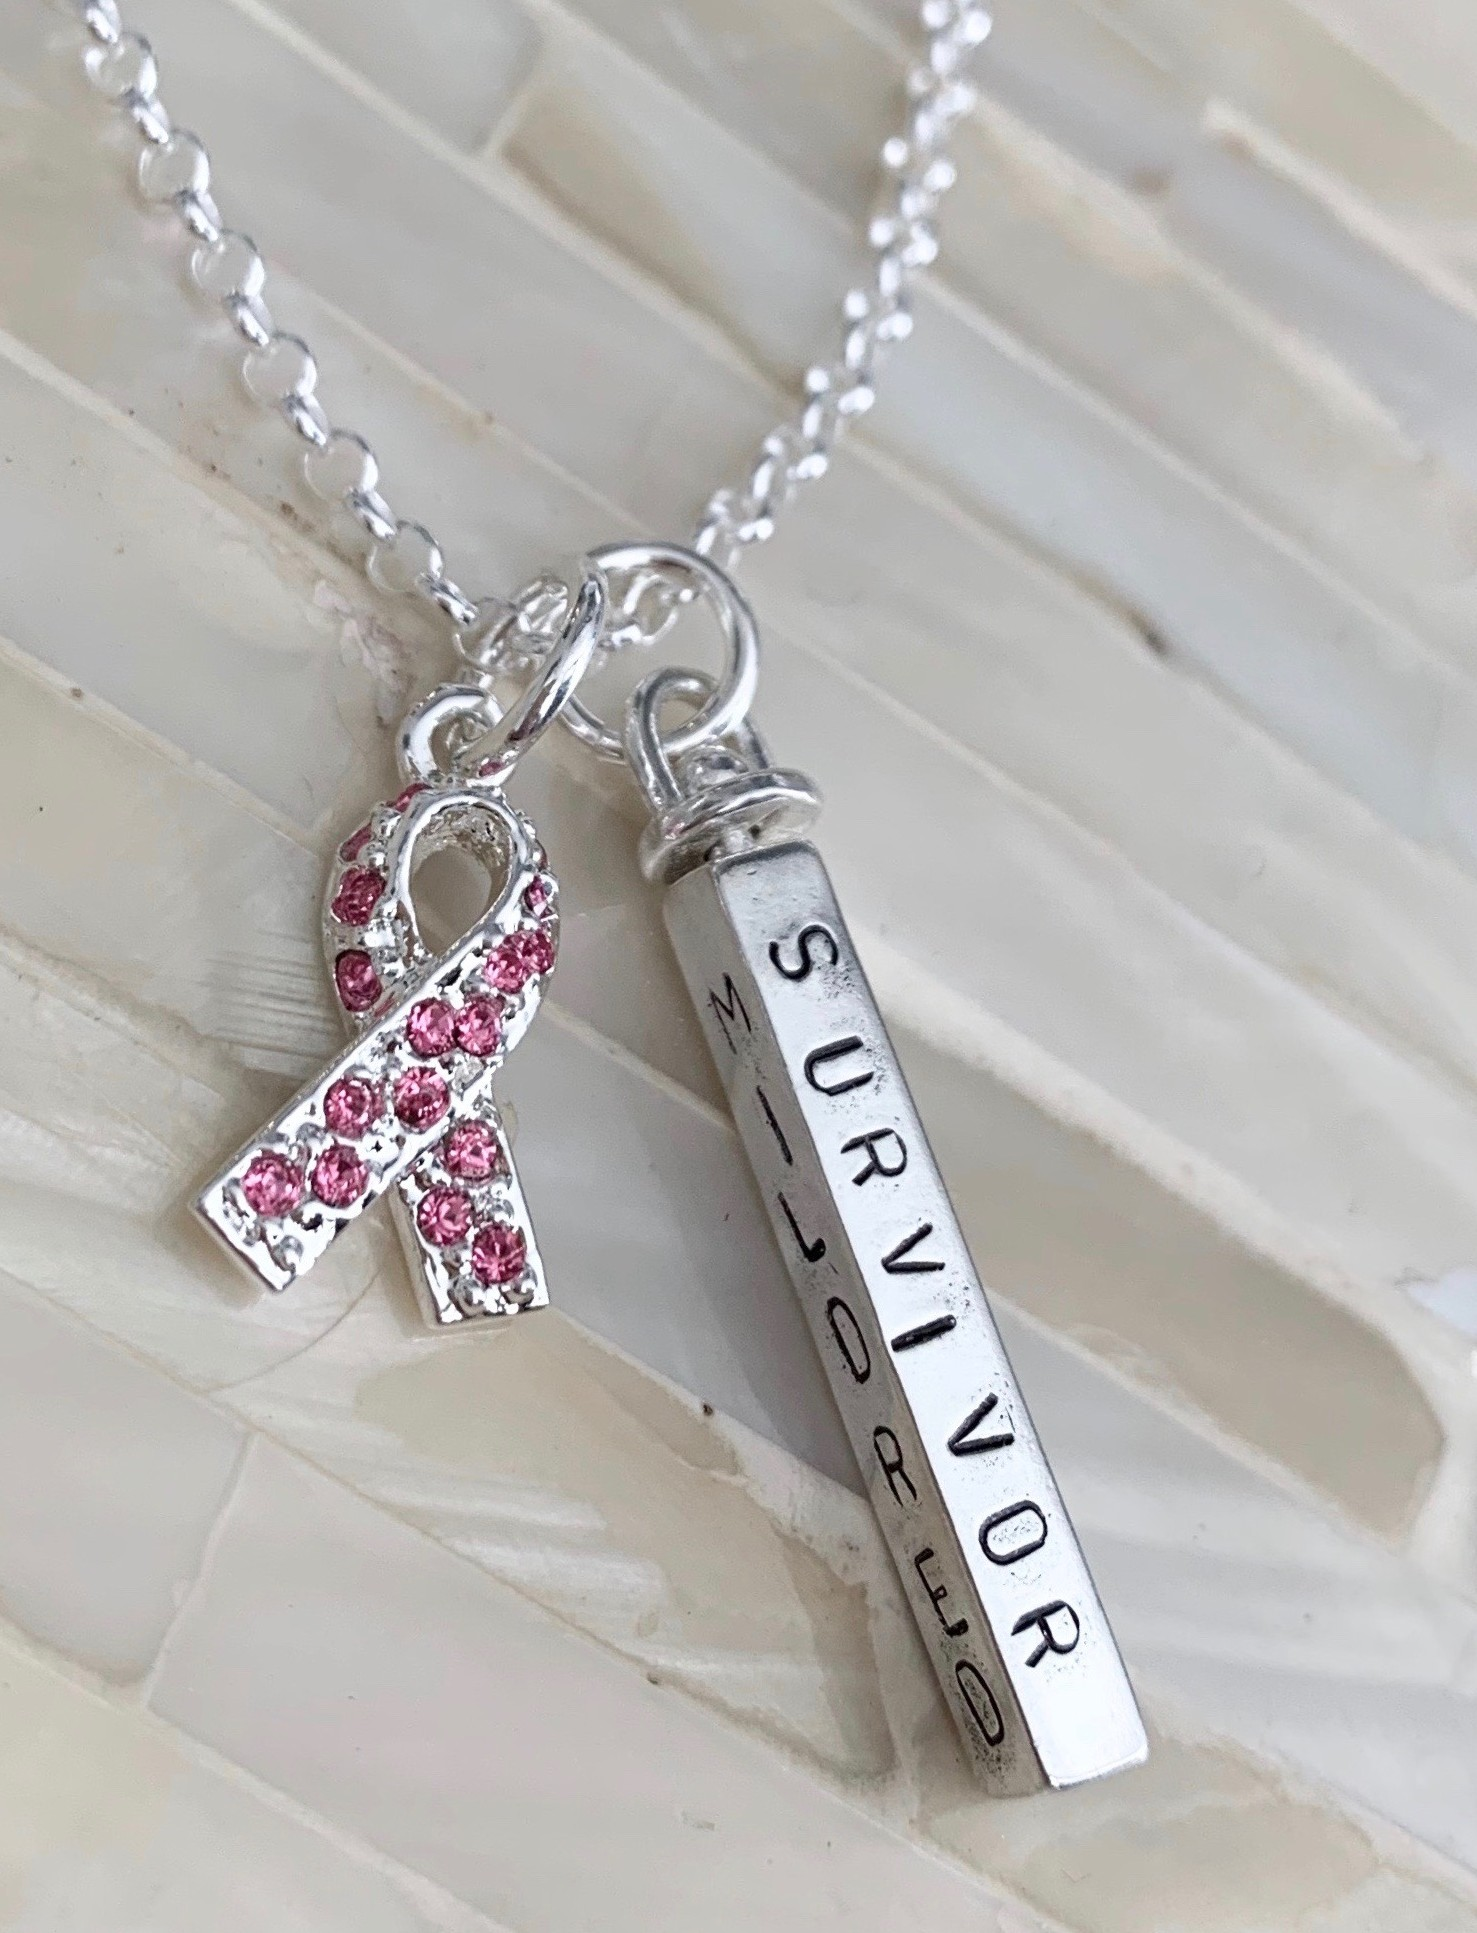 brest cancer jewelry